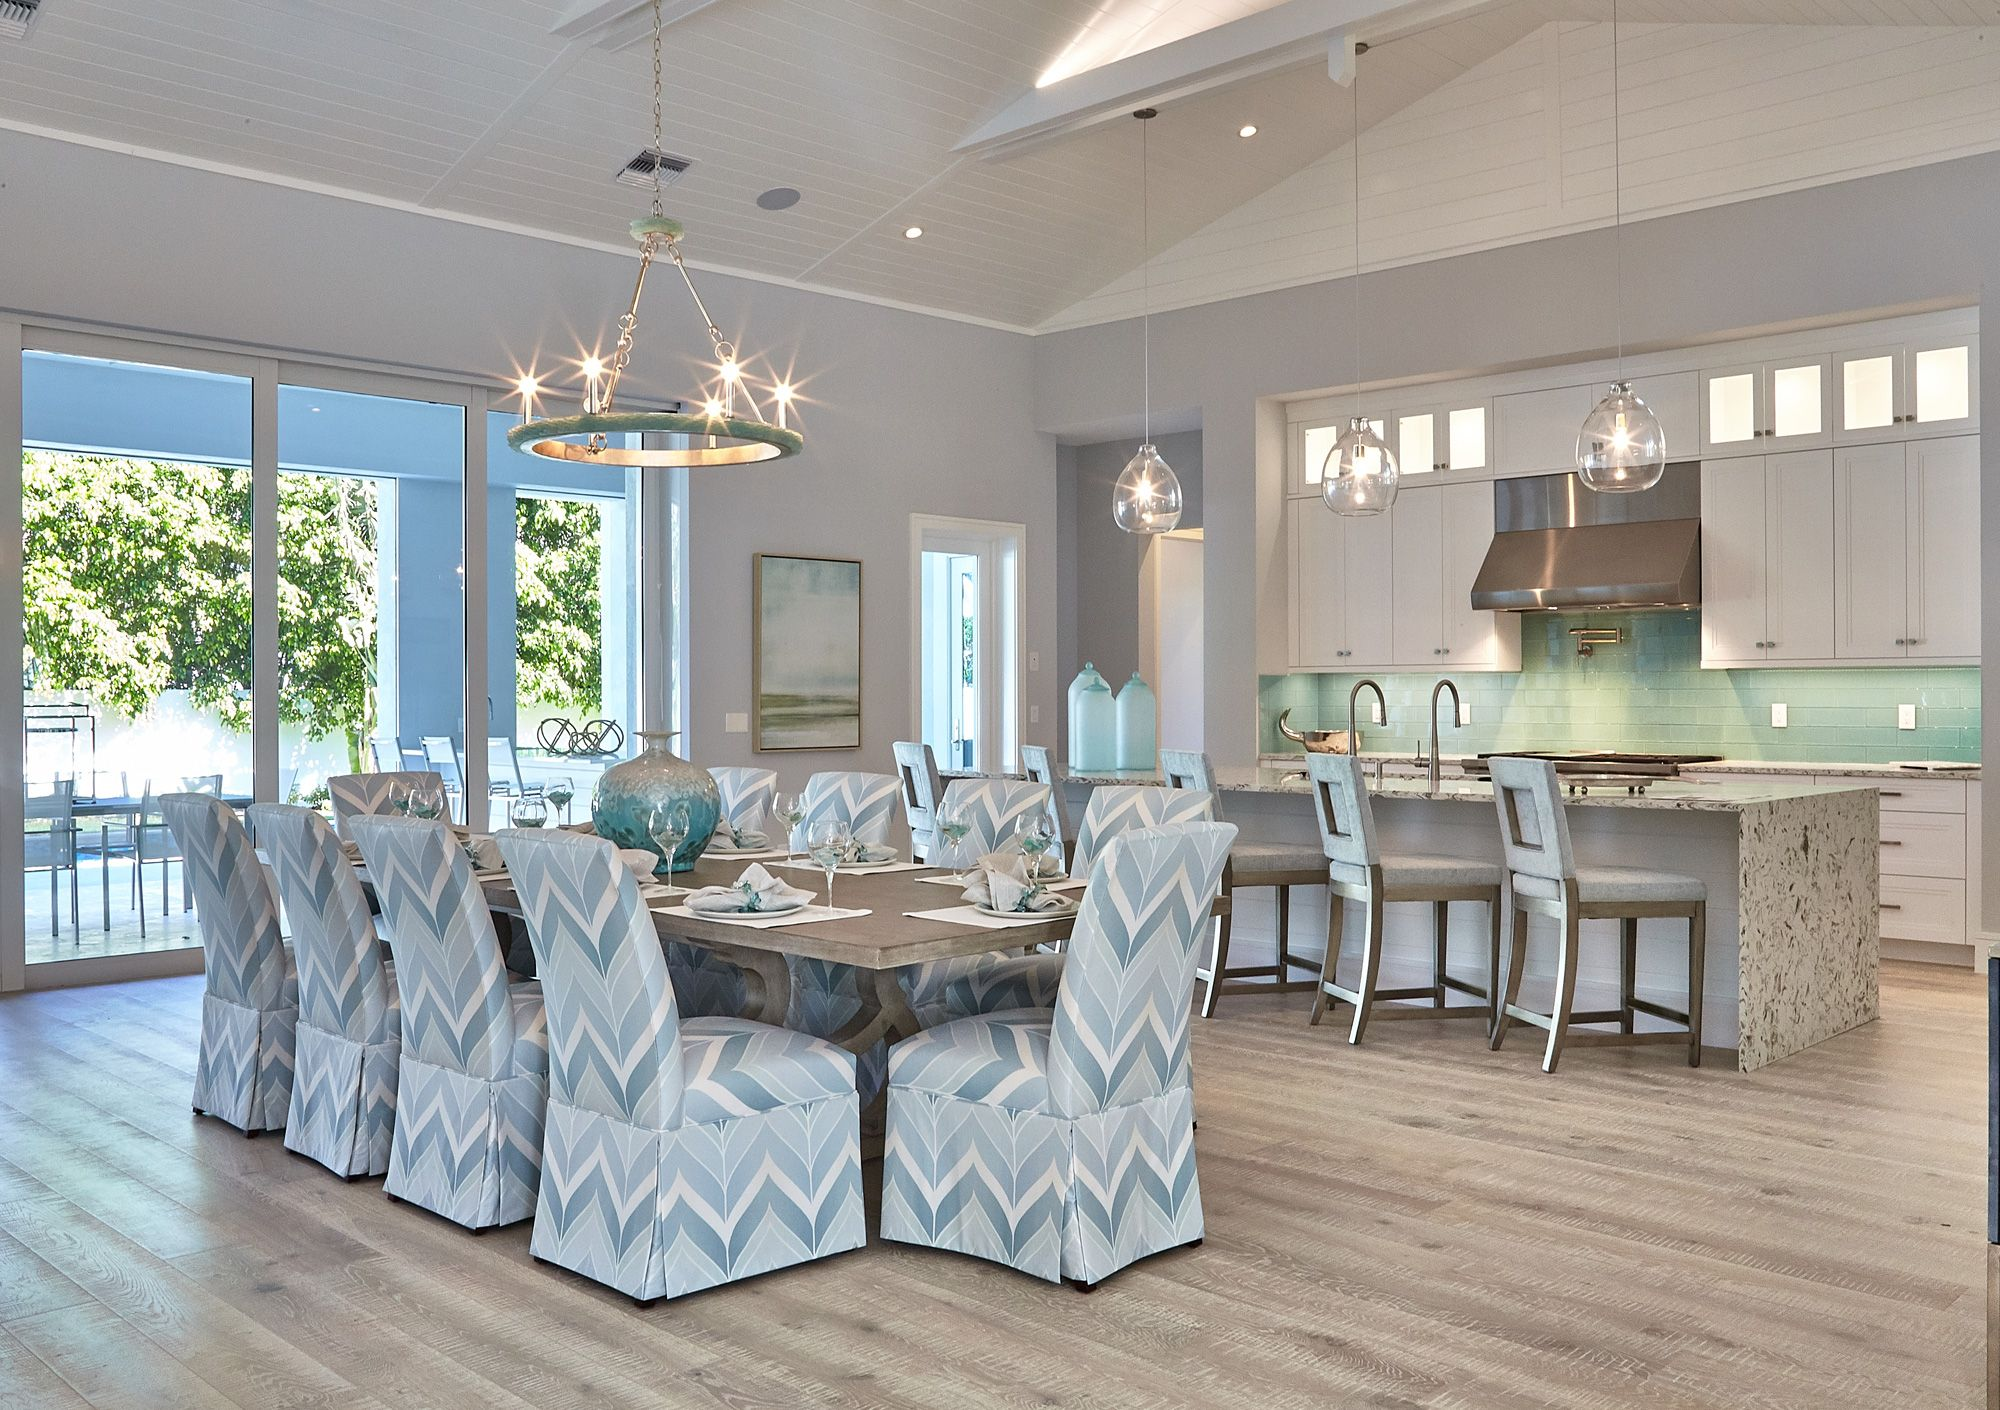 One Of A Kind Island Inspired Home In Naples With Interior Design And Furnishing By Robb Stucky Designer Susan Bleda